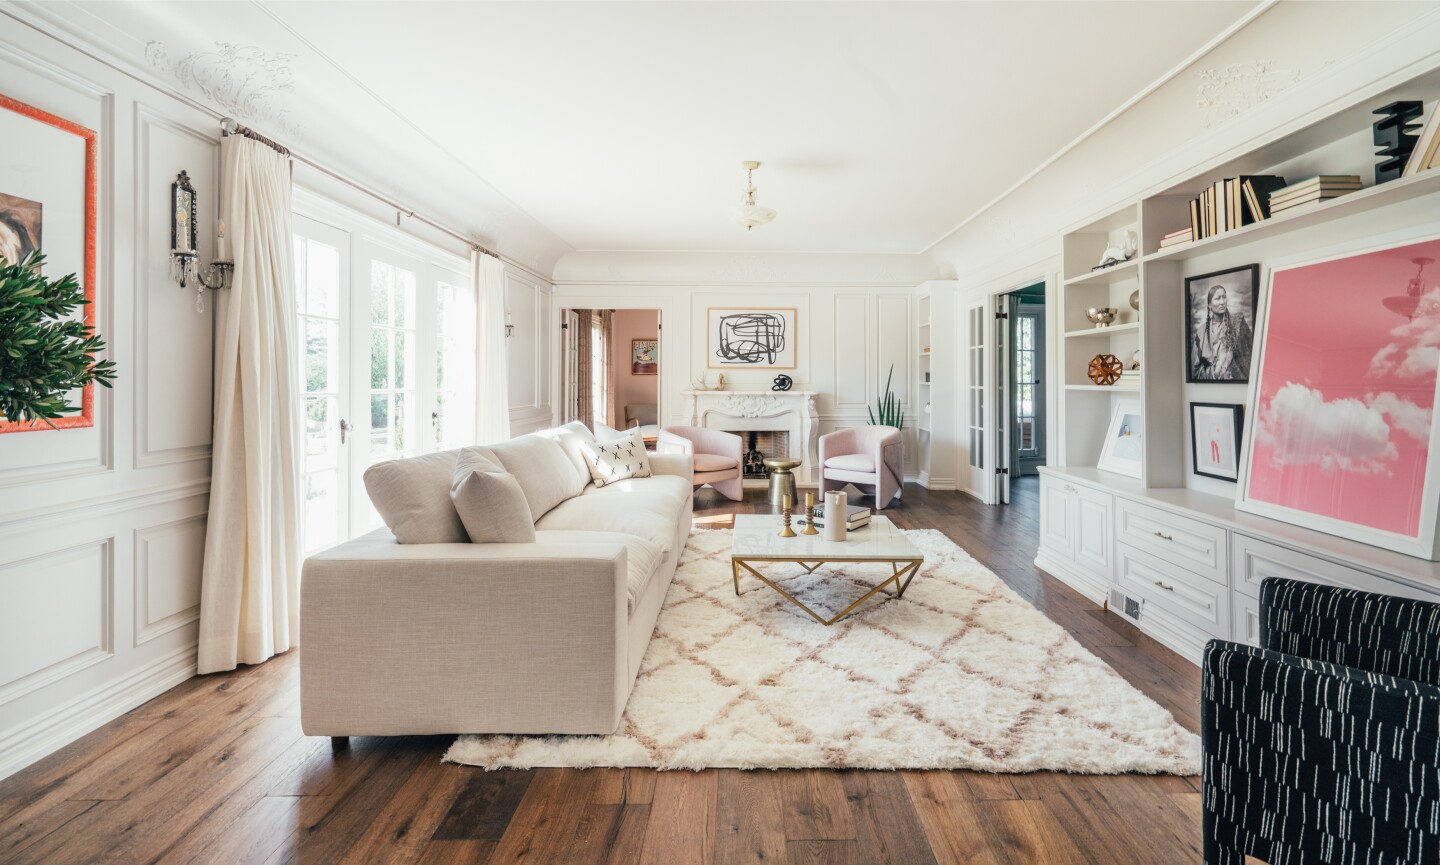 Built in 1923, the elegant abode boasts four bedrooms, four bathrooms and formal living spaces with old-school style across 3,282 square feet.